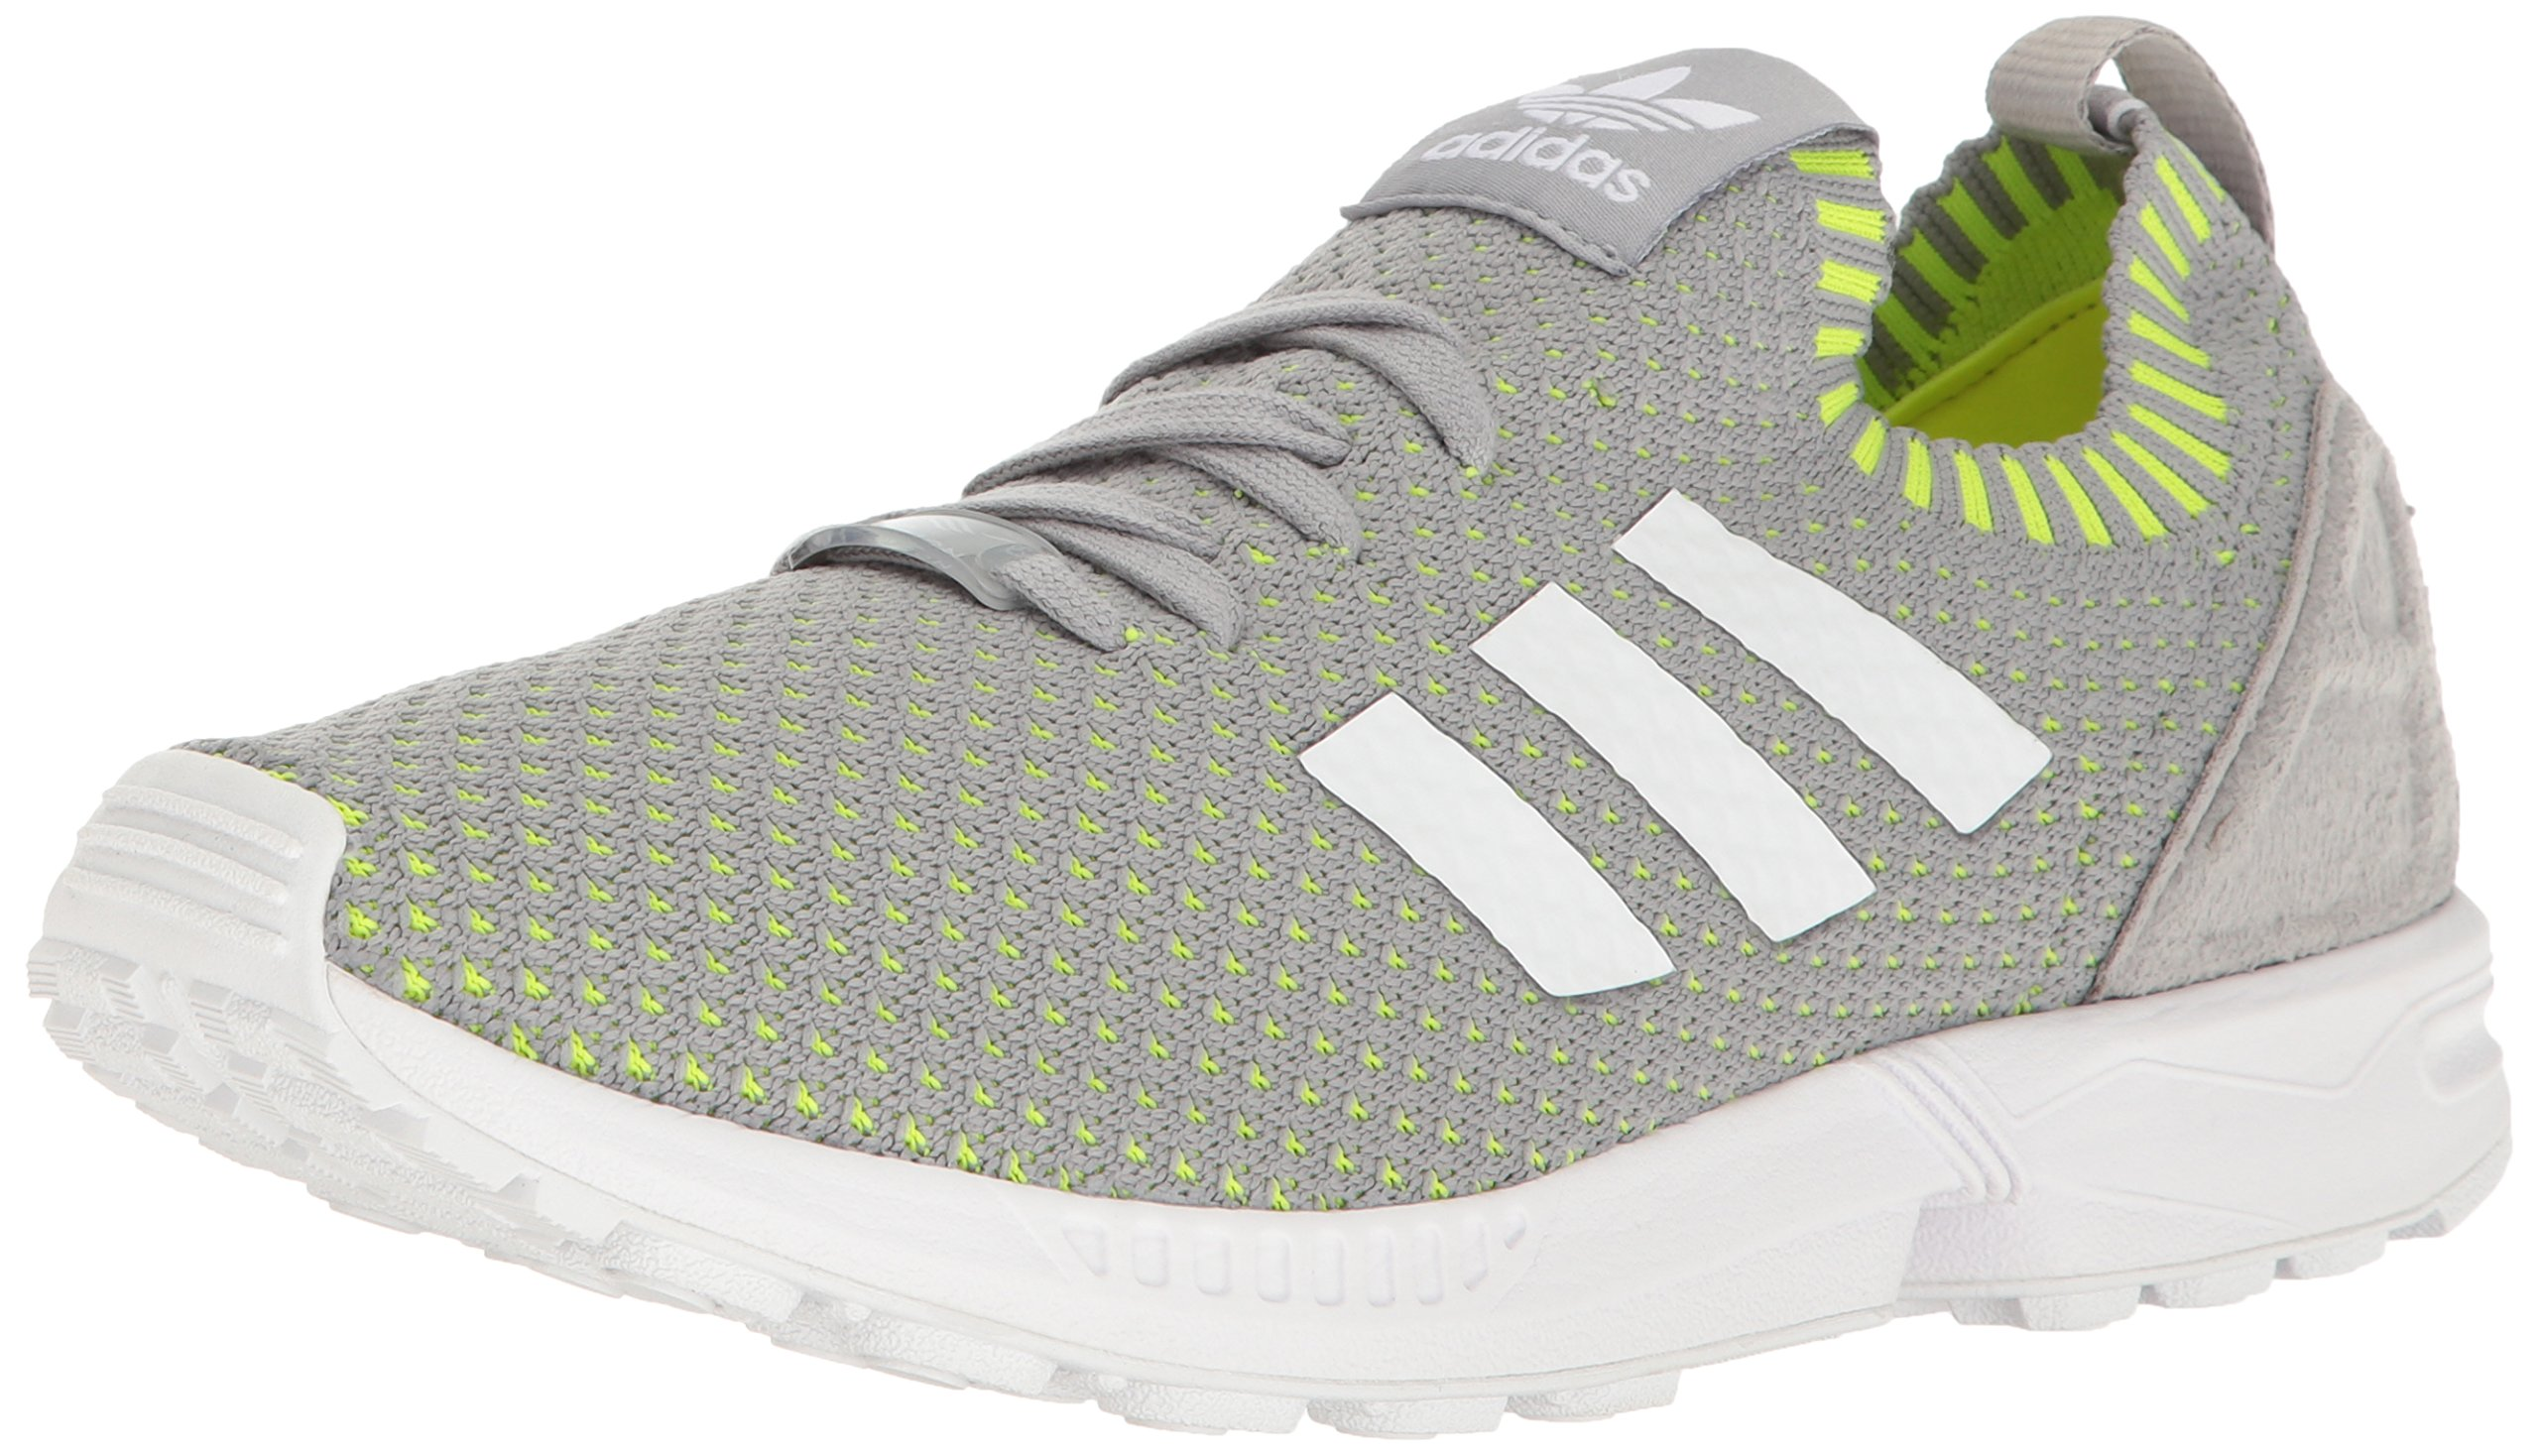 huge selection of 54e69 0b1f0 adidas Originals Men's Shoes   Zx Flux Pk Fashion Sneakers, Mid Grey  White/Electricity, ((4 M US)